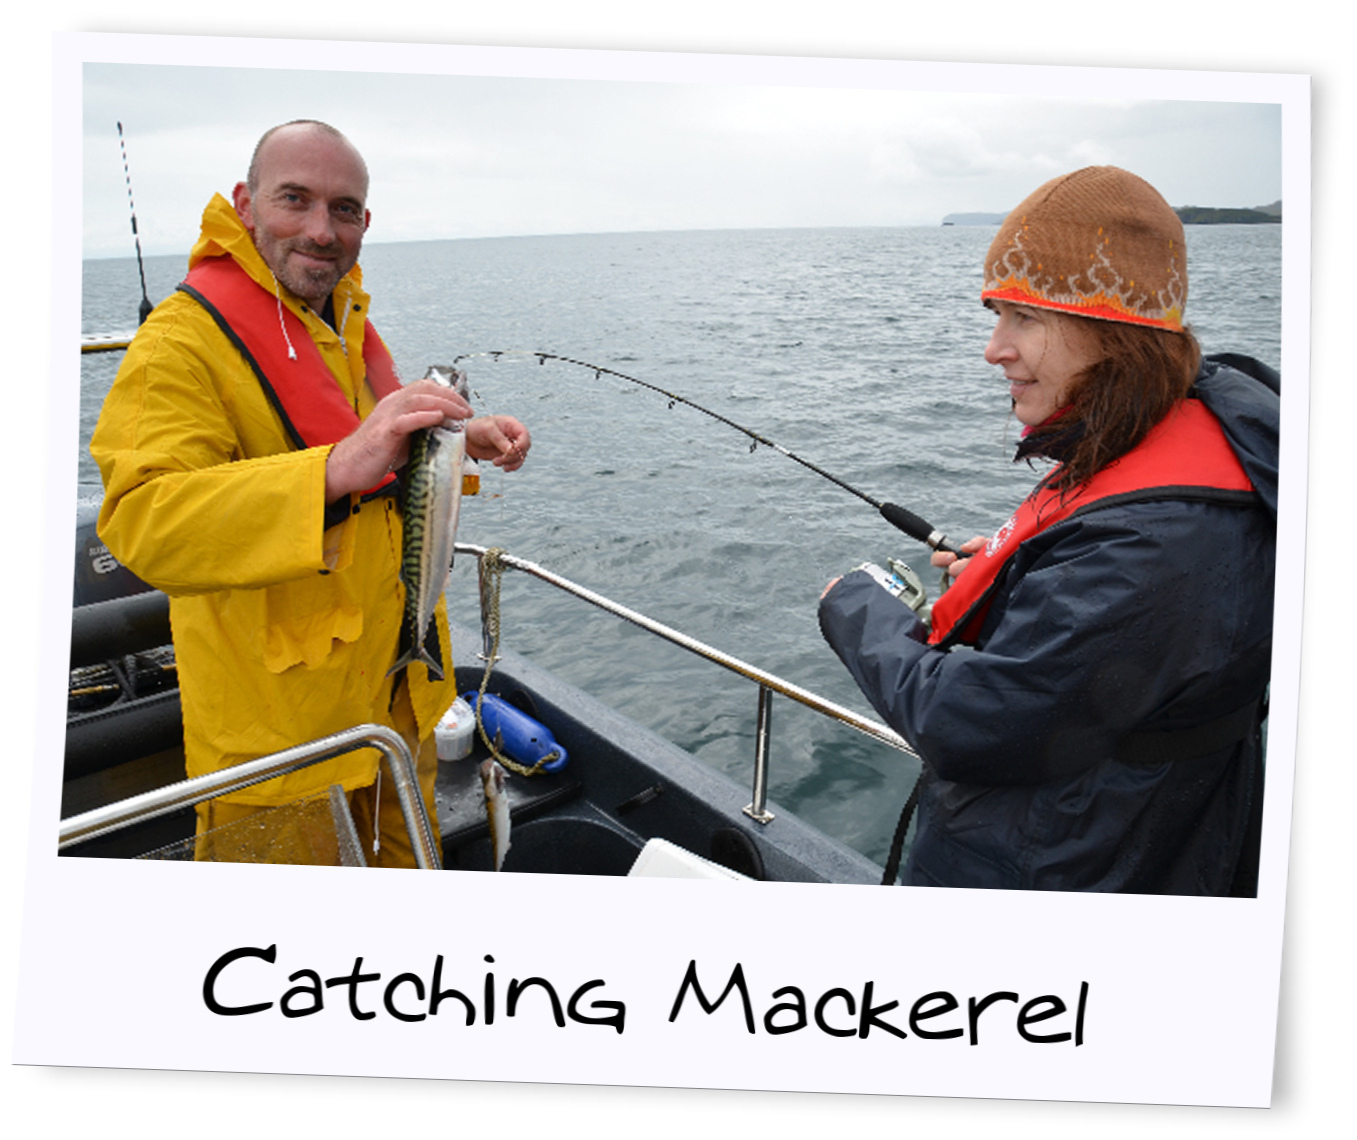 catching mackerel